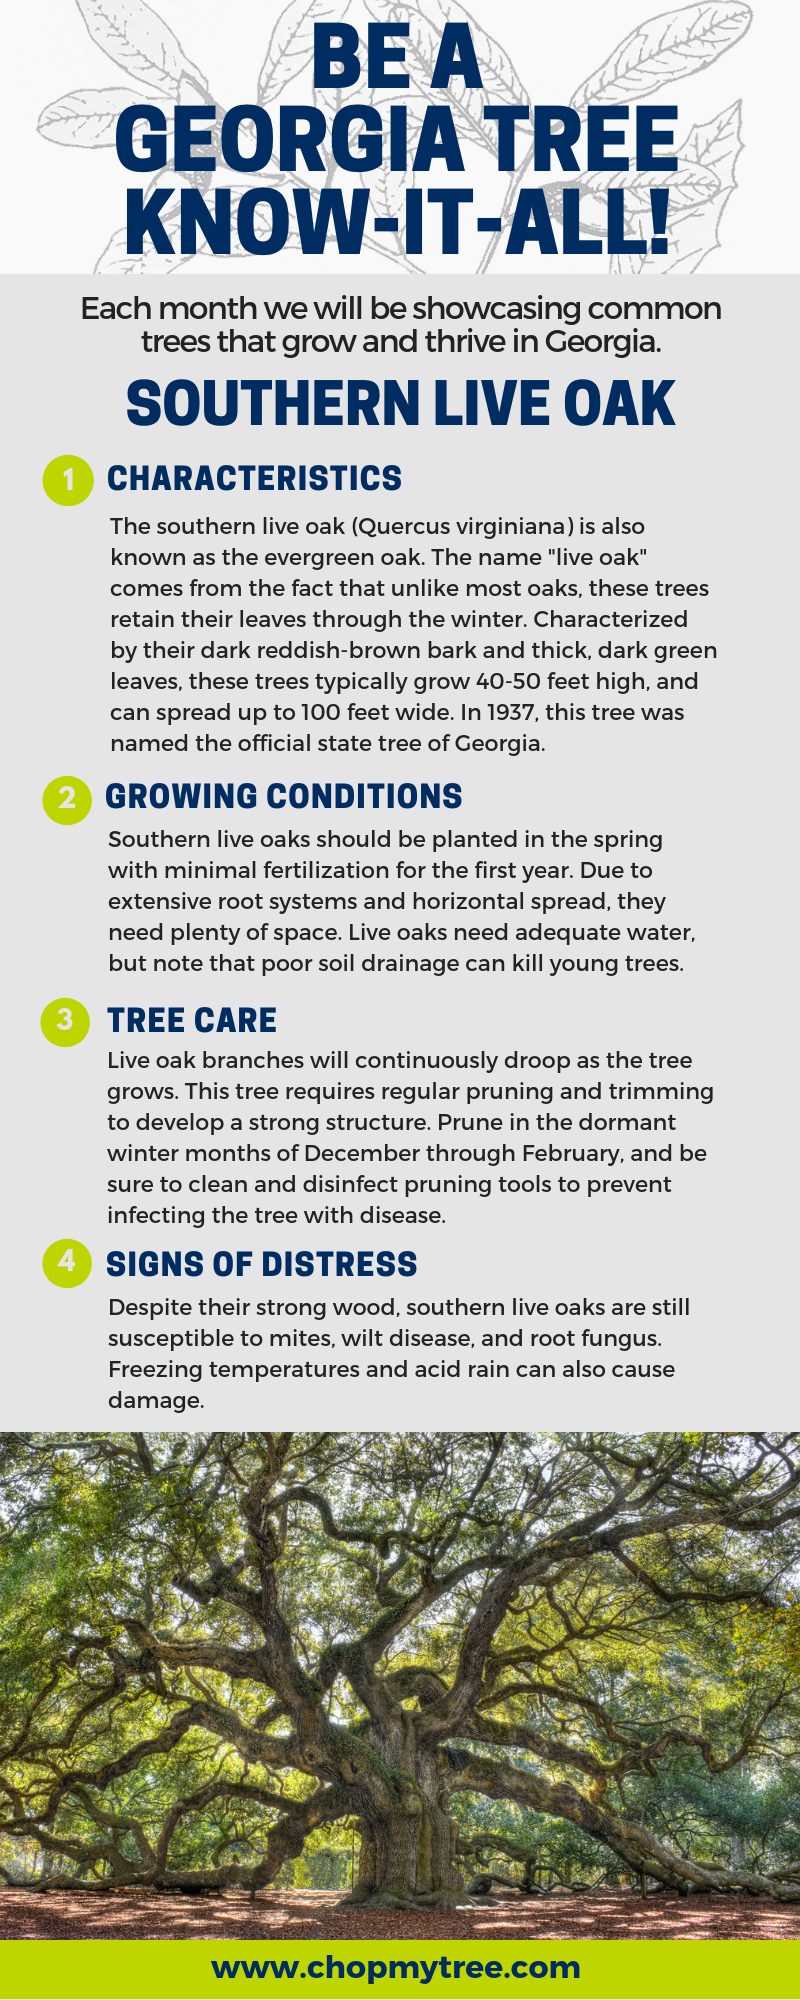 Southern Live Oak Tree Infographic